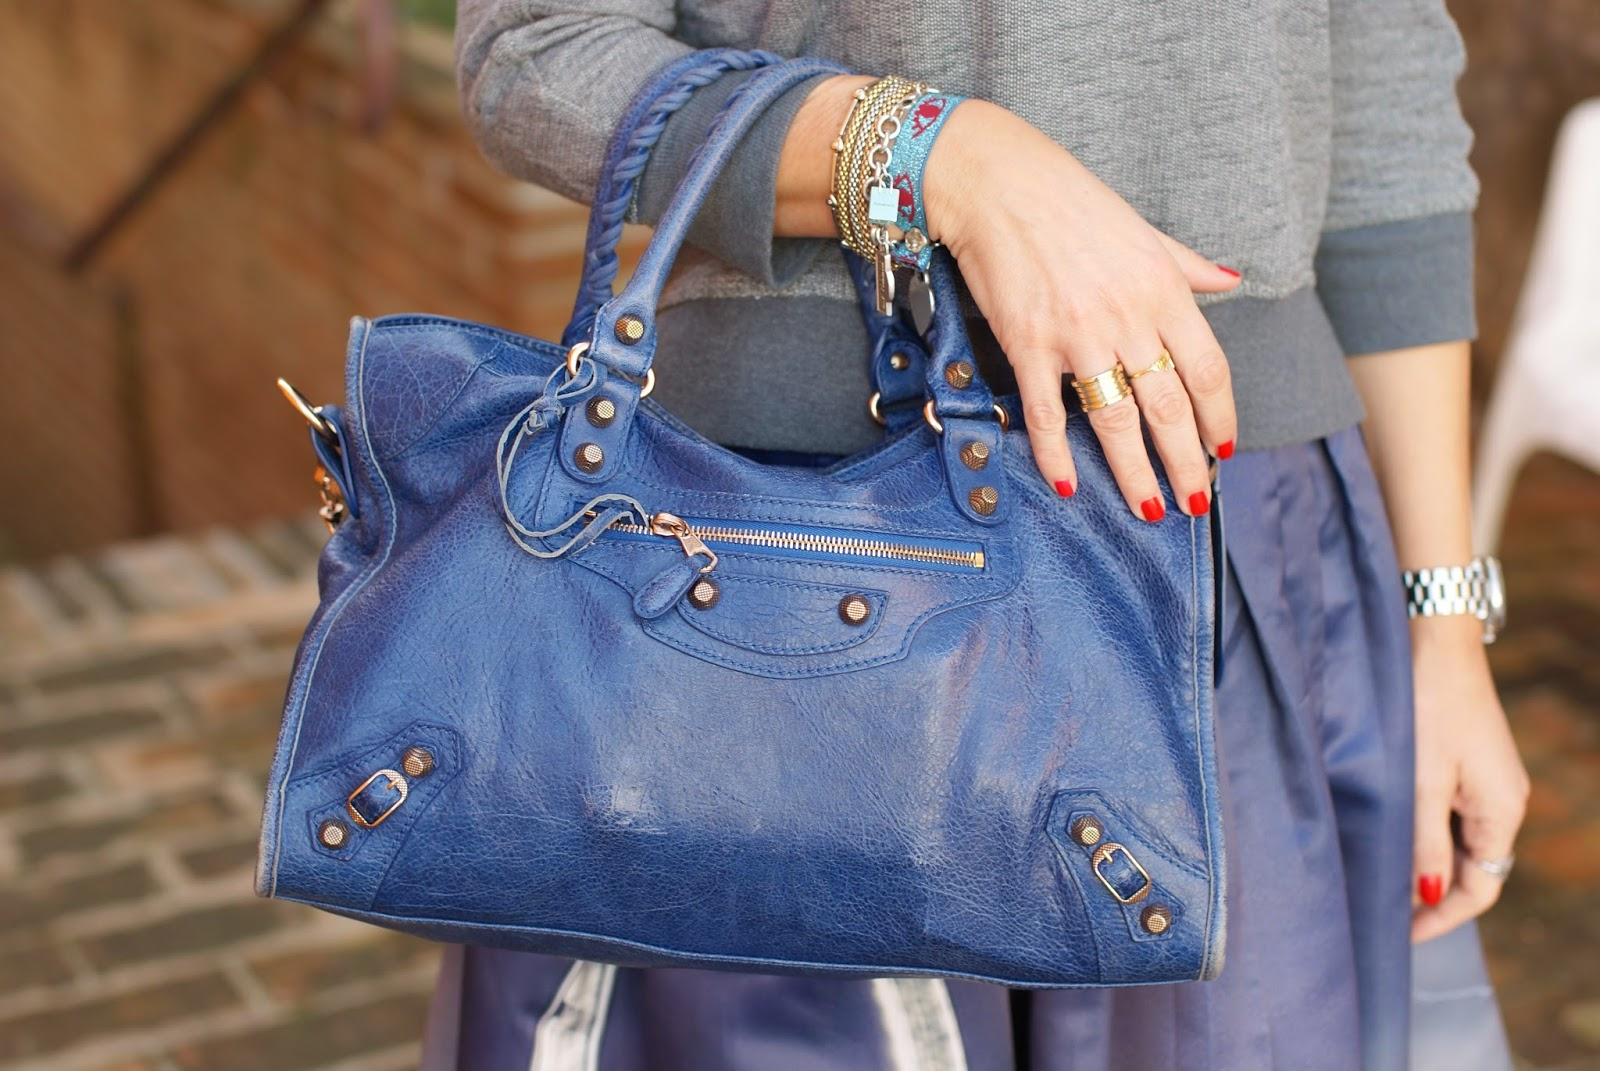 Balenciaga City cobalt blue bag, Fashion and Cookies, fashion blogger